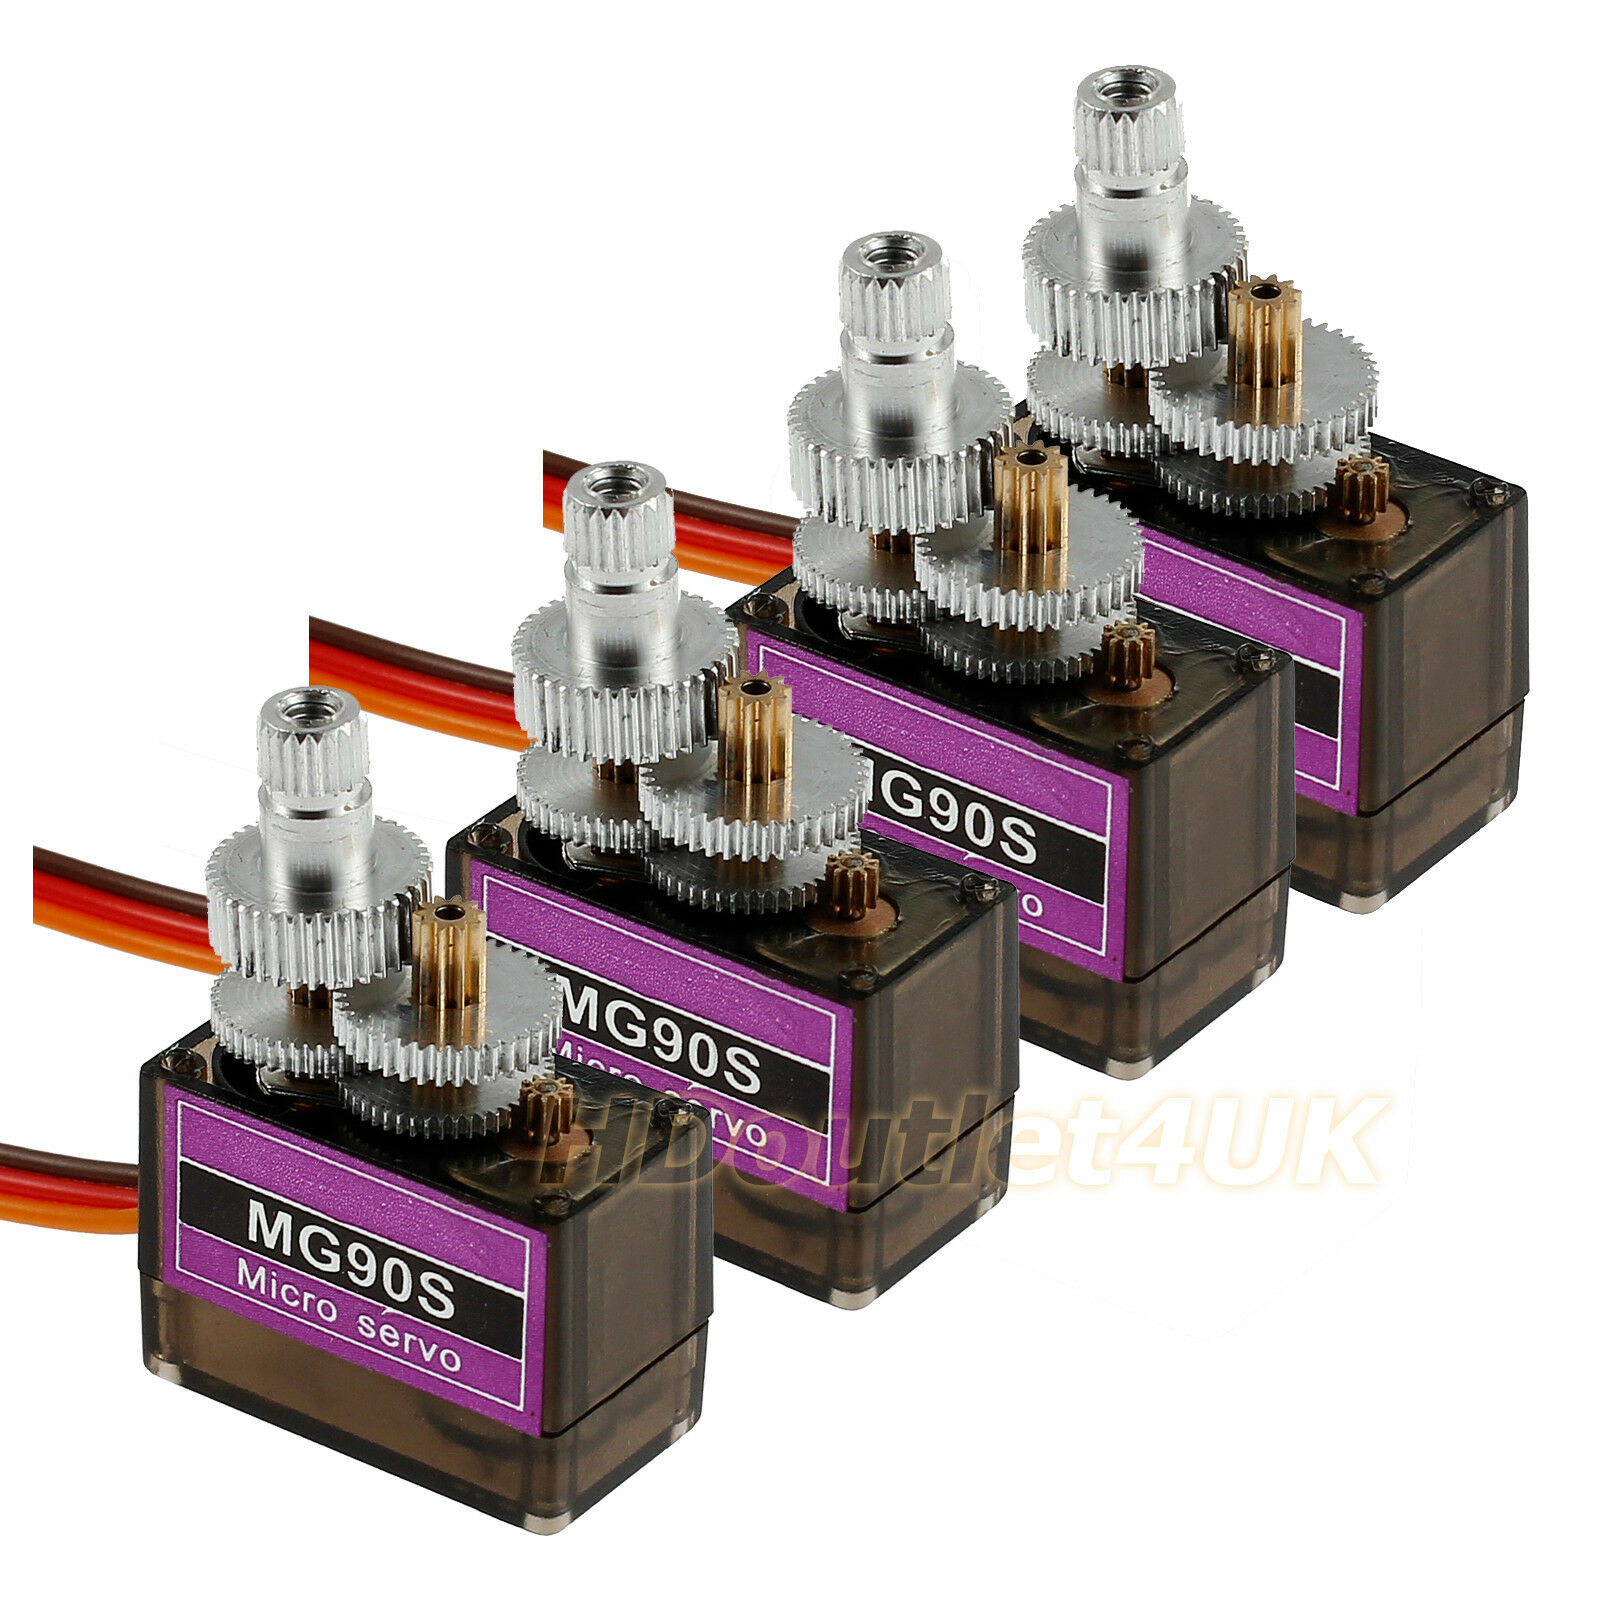 Details about 4X MG90S Metal Gear RC Micro Servo Motor Arduino Metal Gear  Helicopter Airplane